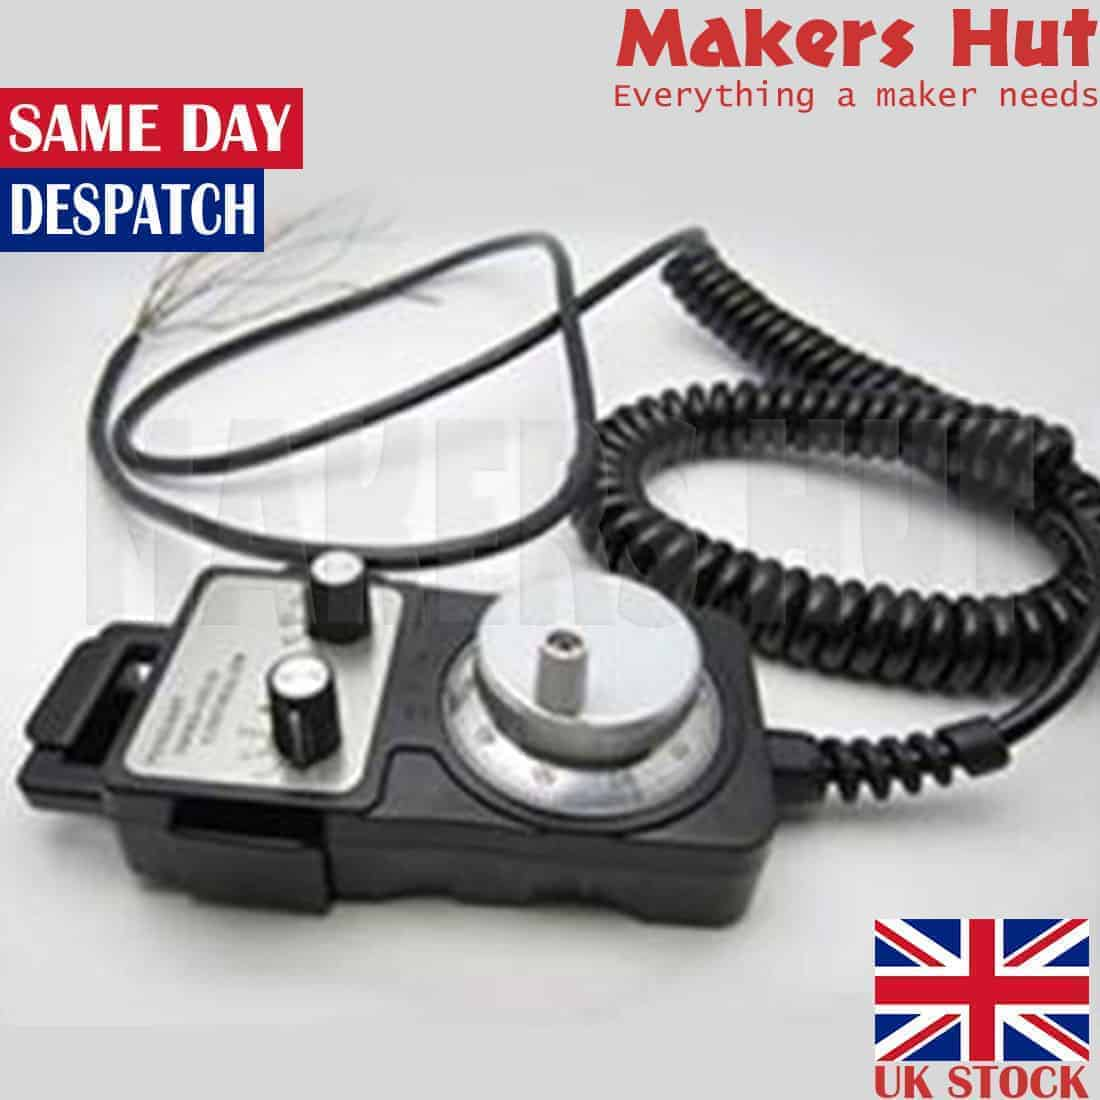 Mach3 compatible mpg pendant hand held controller cnc handwheel mach3 compatible mpg pendant hand held controller cnc handwheel makers hut aloadofball Image collections